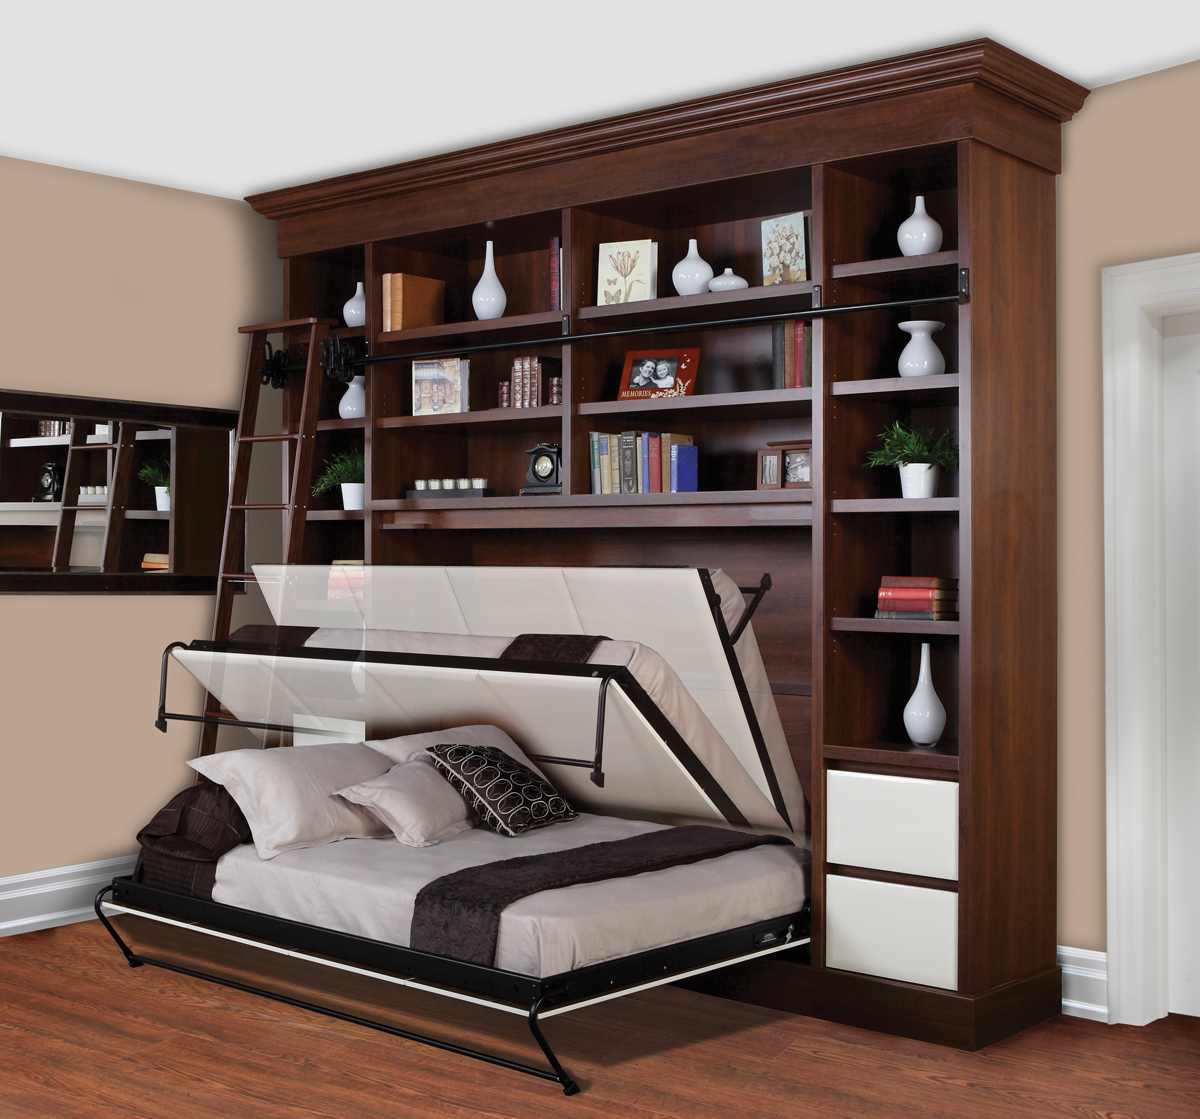 Comfortable Bedroom Design with Murphy Bed Kit Lowes ...